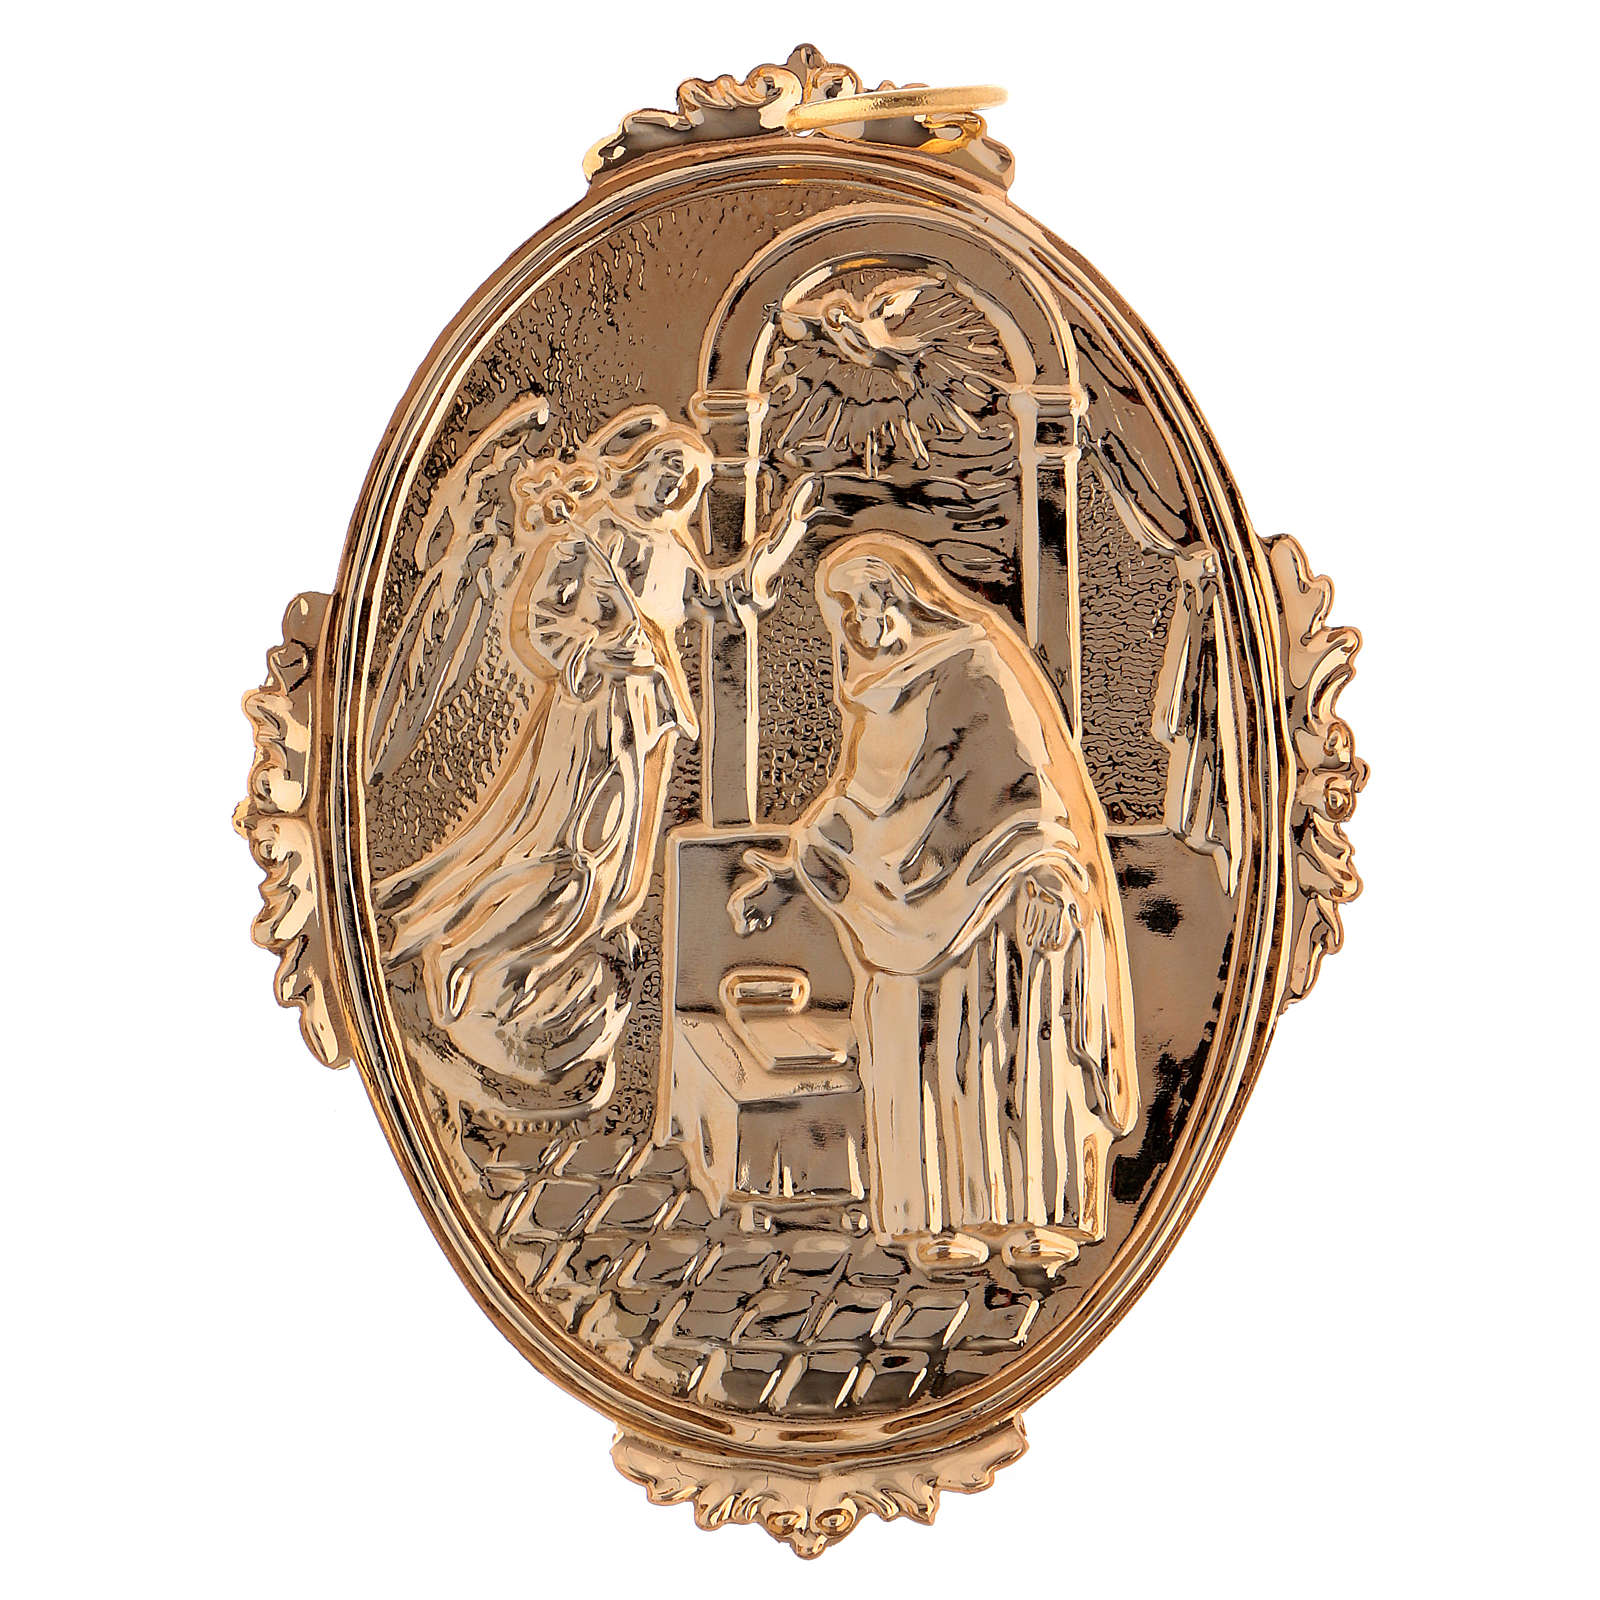 Confraternity Medal in brass, Annunciation scene 3